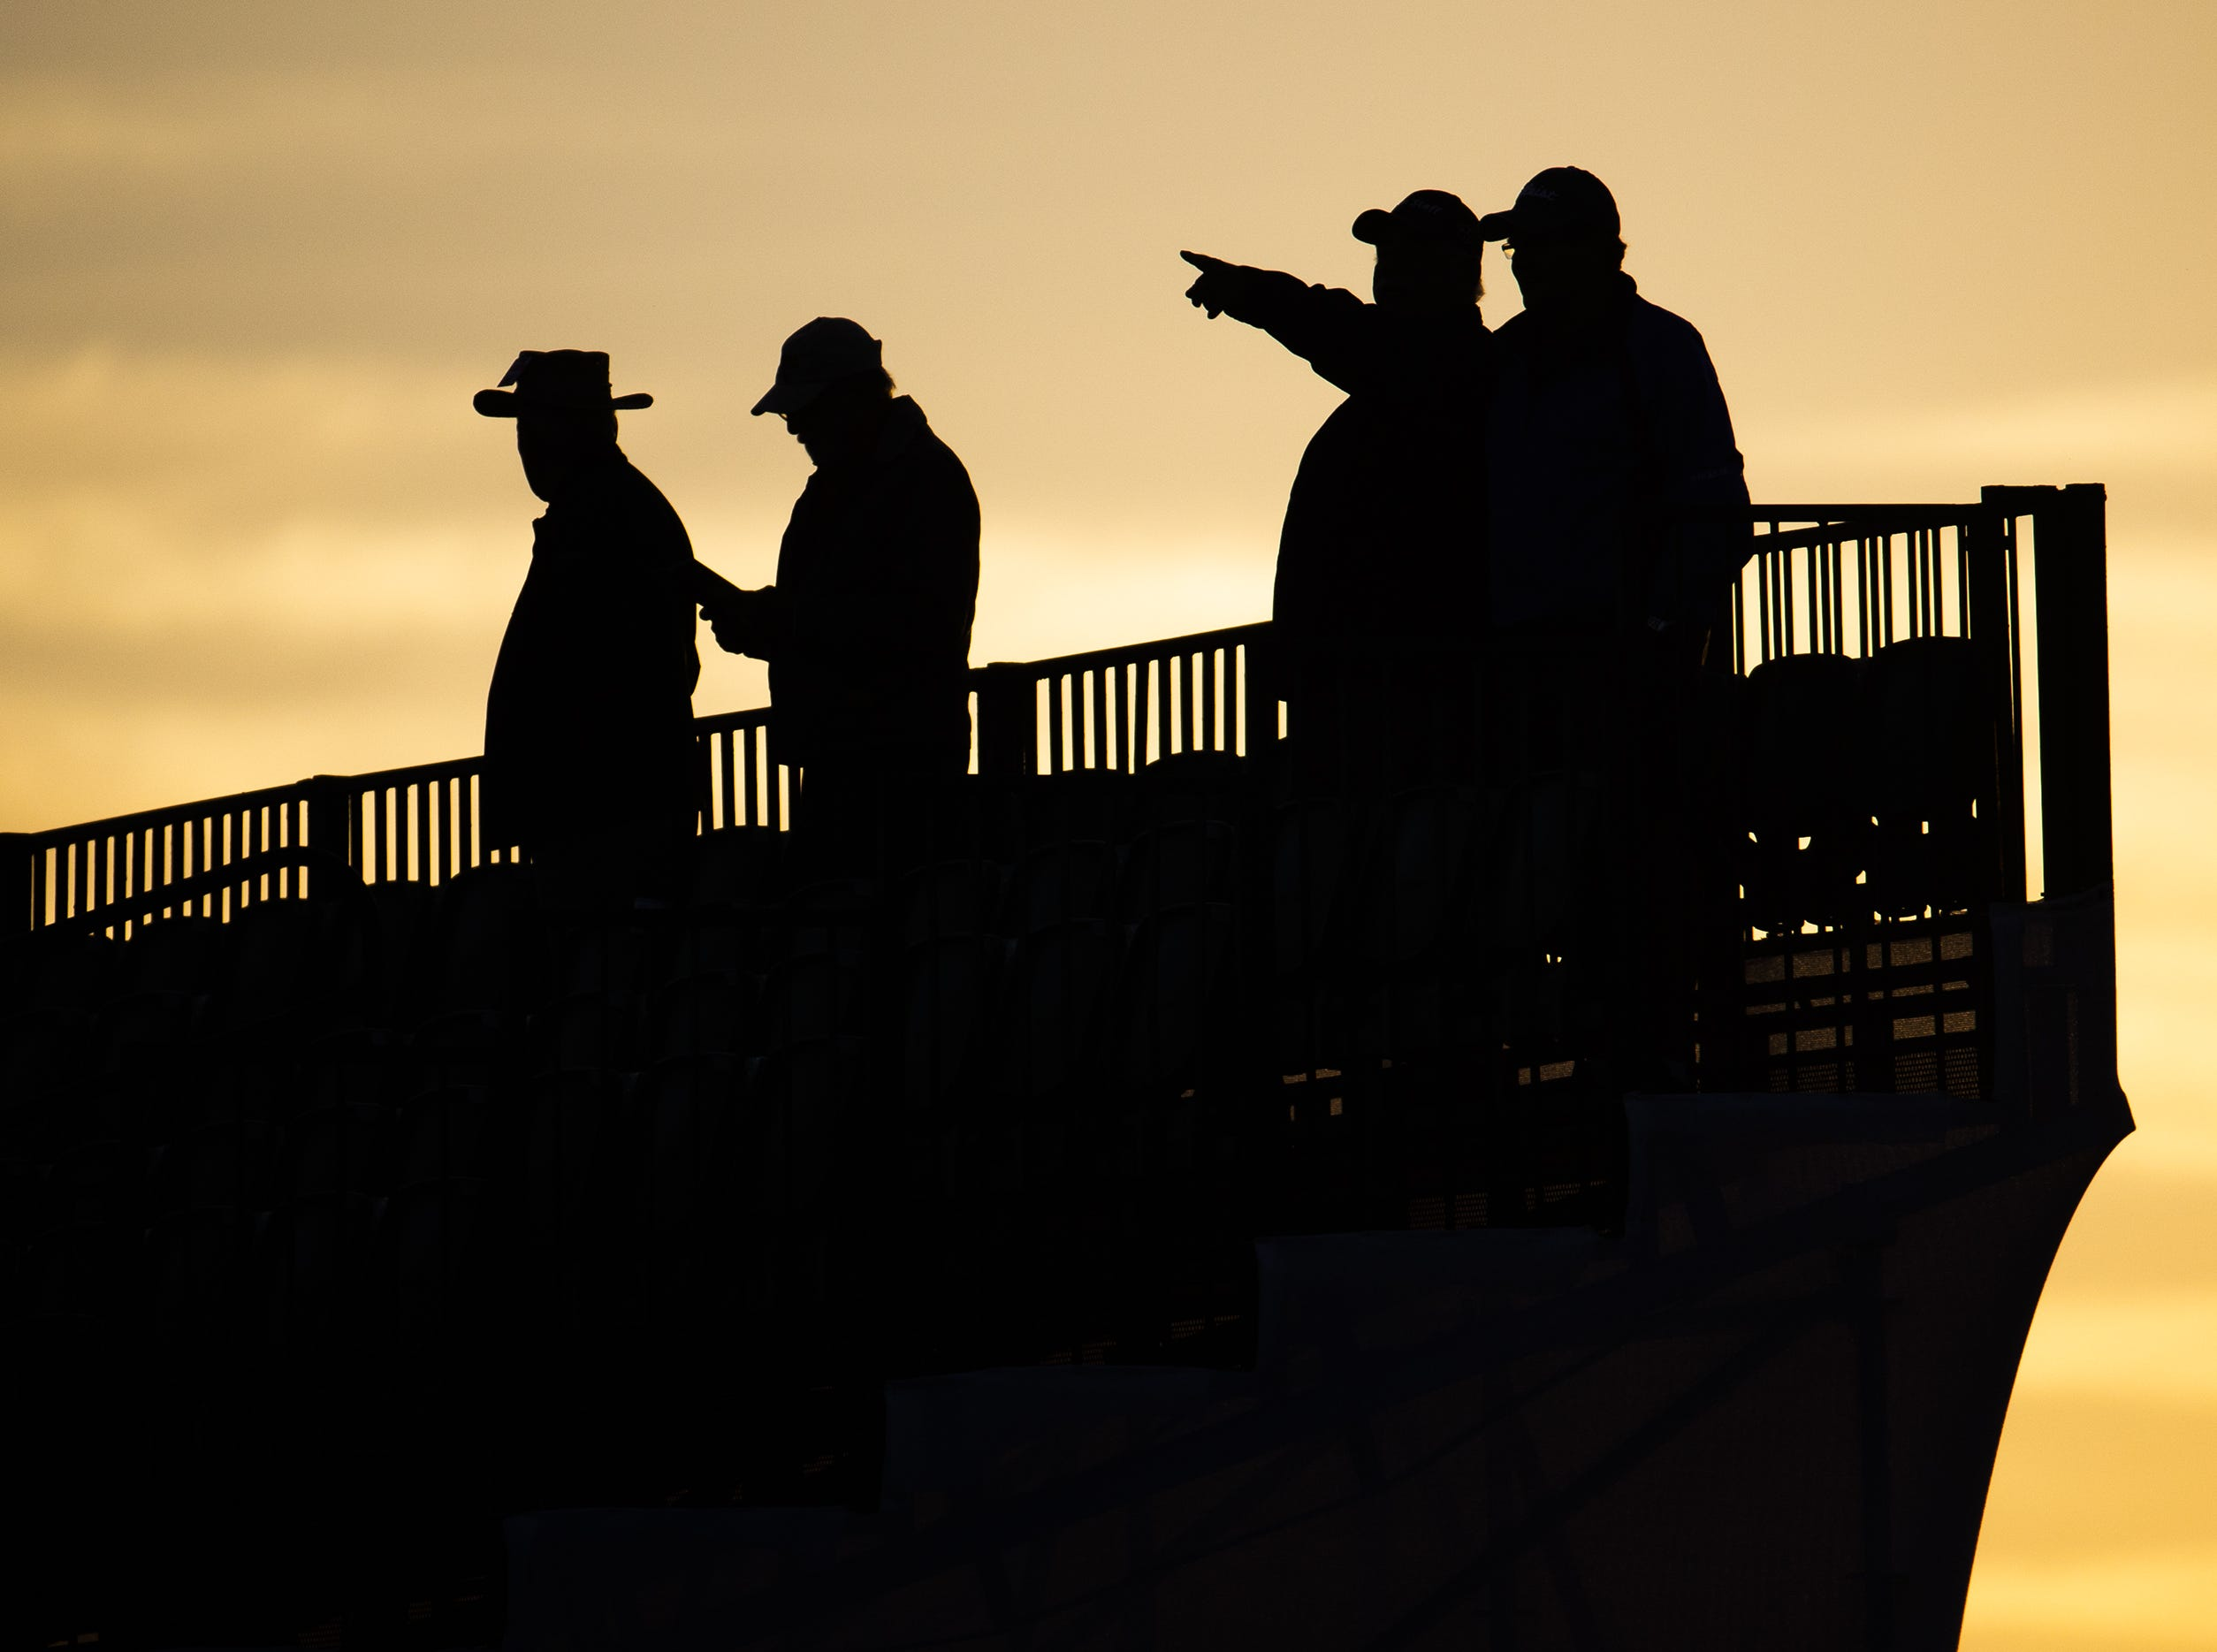 Early bird fans take their place in the stands overlooking the first tee Thursday just before sunrise at the Waste Management Phoenix Open at TPC Scottsdale.